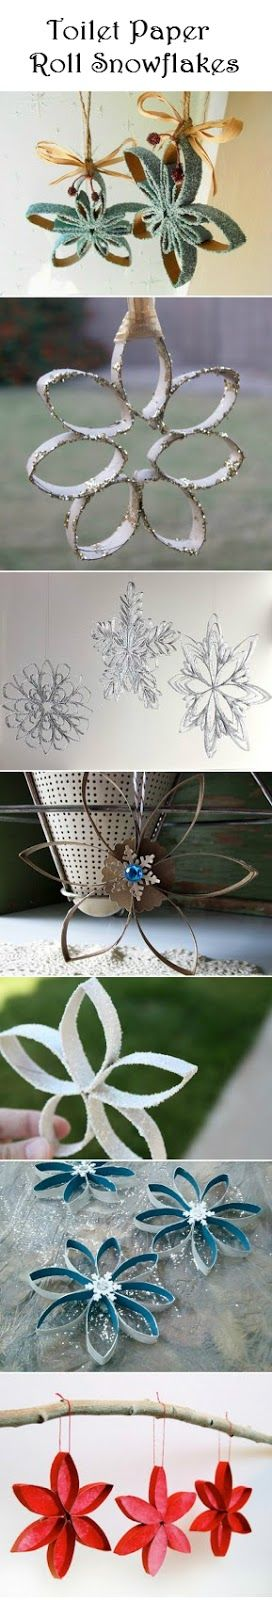 Toilet Paper Roll Snowflakes | Crafts and DIY Community                                                                                                                                                                                 Más